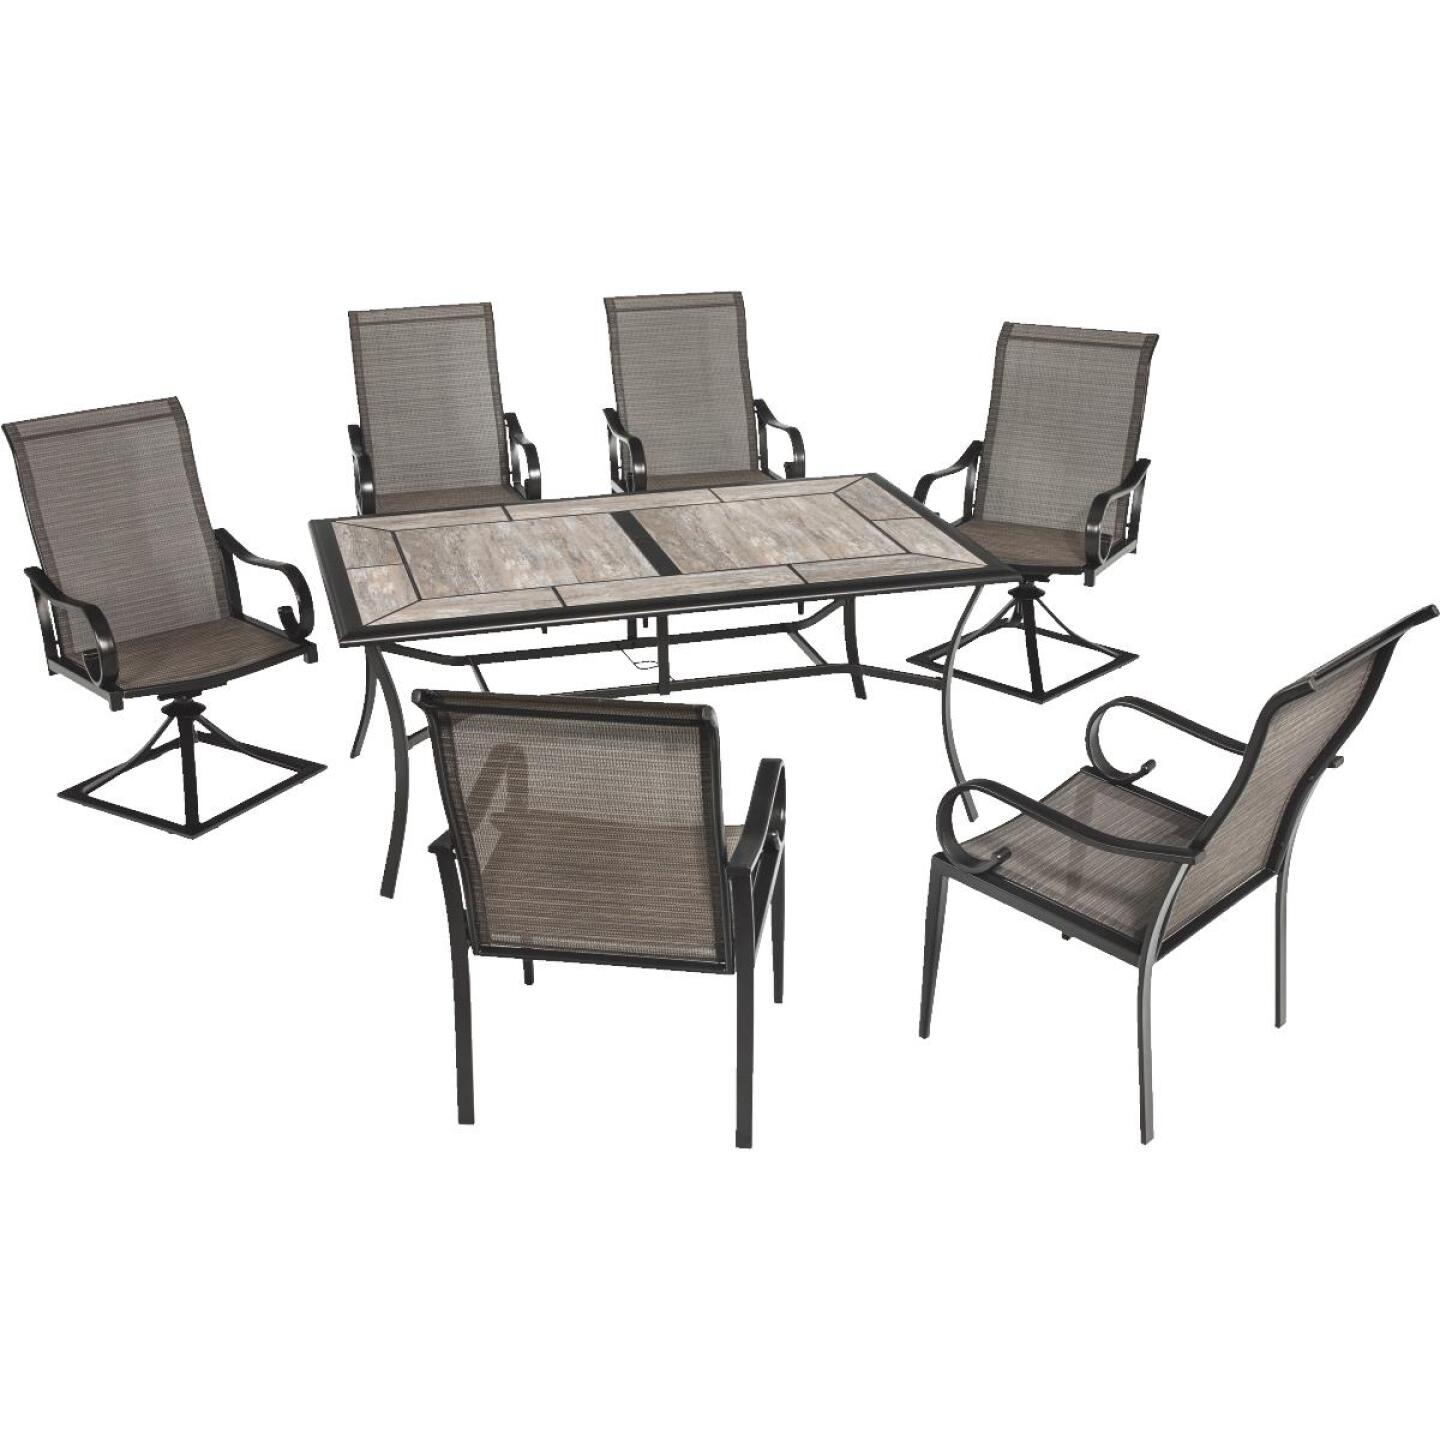 Outdoor Expressions Berkshire 7-Piece Dining Set Image 132